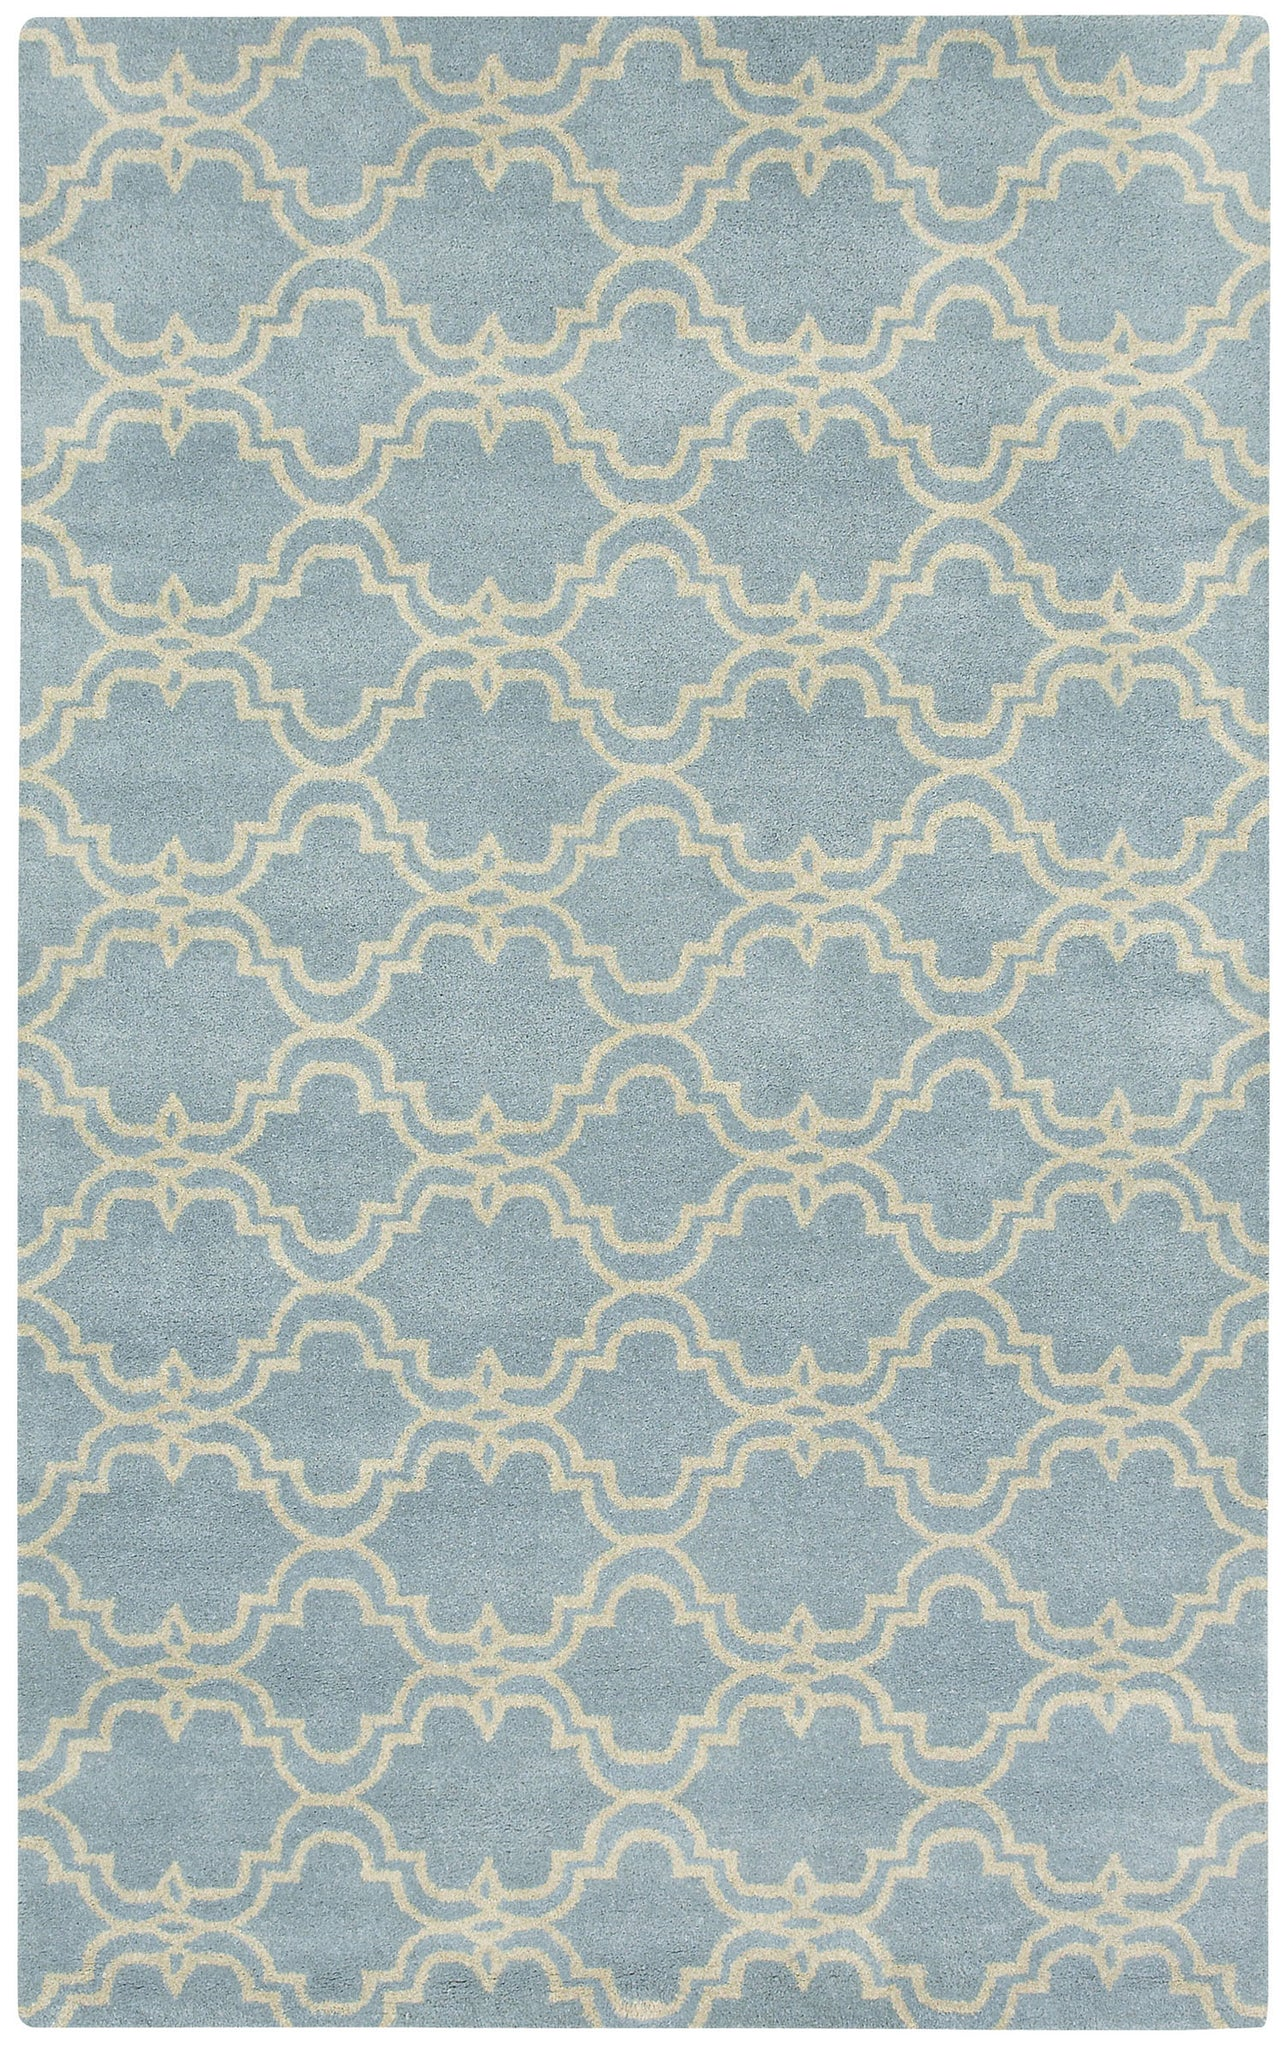 Capel Charisma-Tile 3265 Sky Blue Area Rug main image